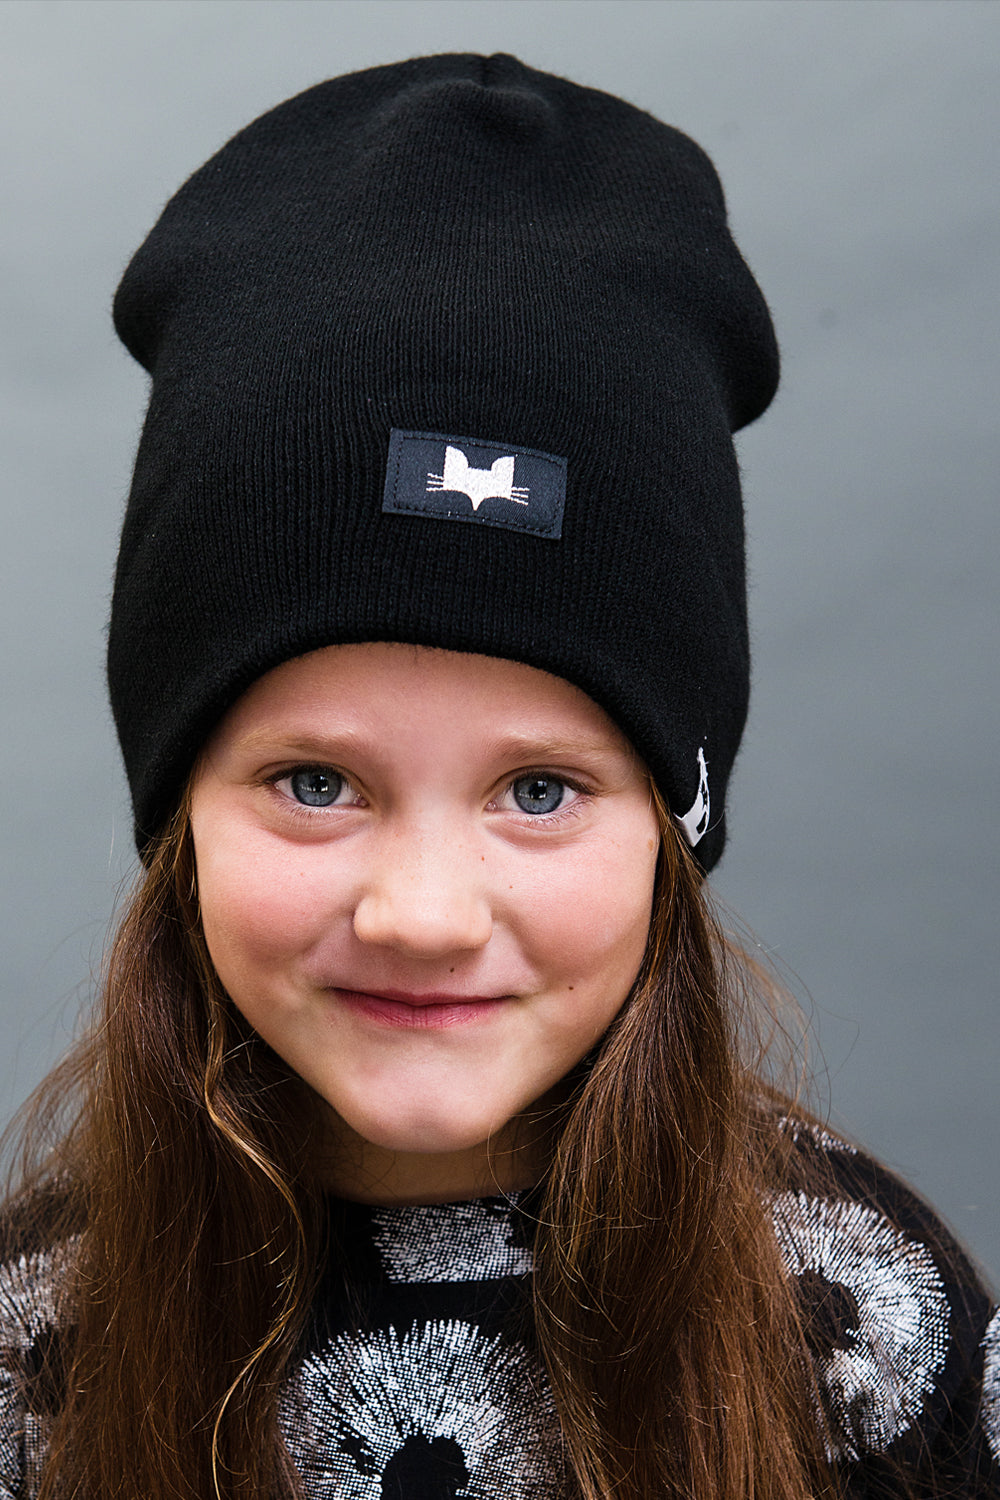 Unisex foxy beanie. Metallic silver logo badge, made and designed in the uk.